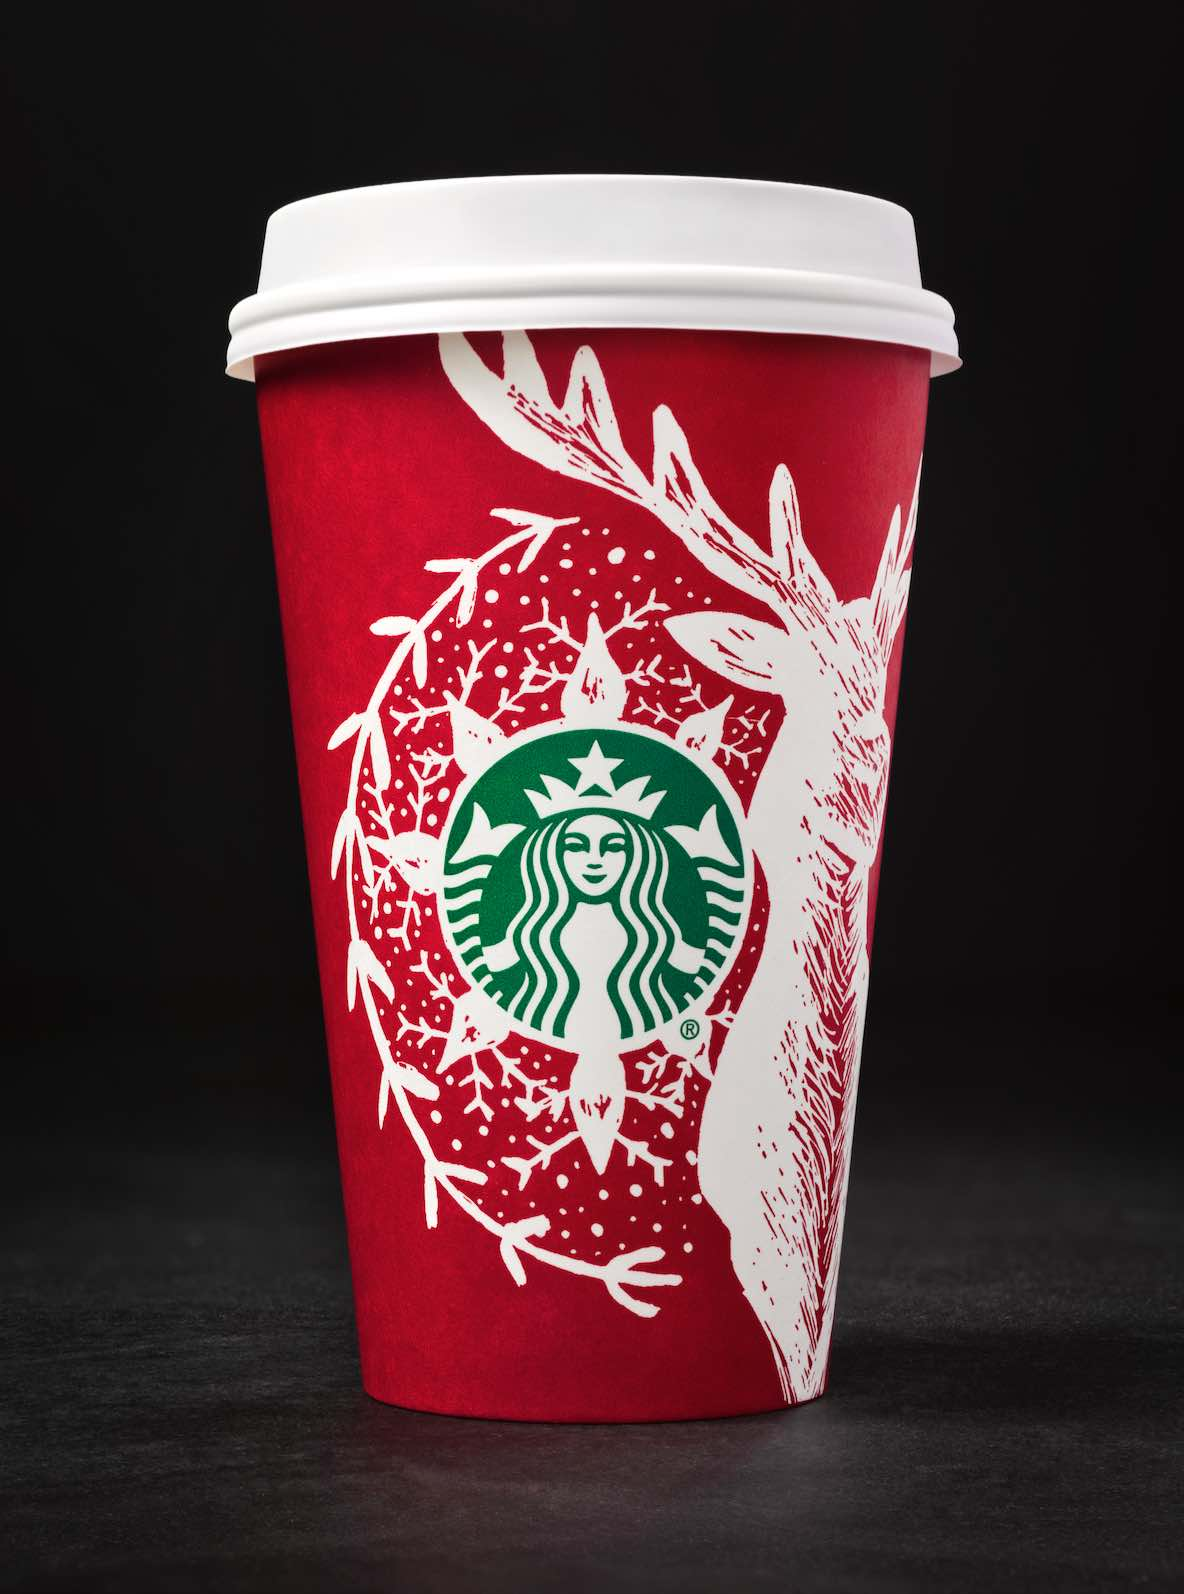 starbucks-woodland-deer-by-samantha-broomall-pennsylvania-united-states-aspirantsg